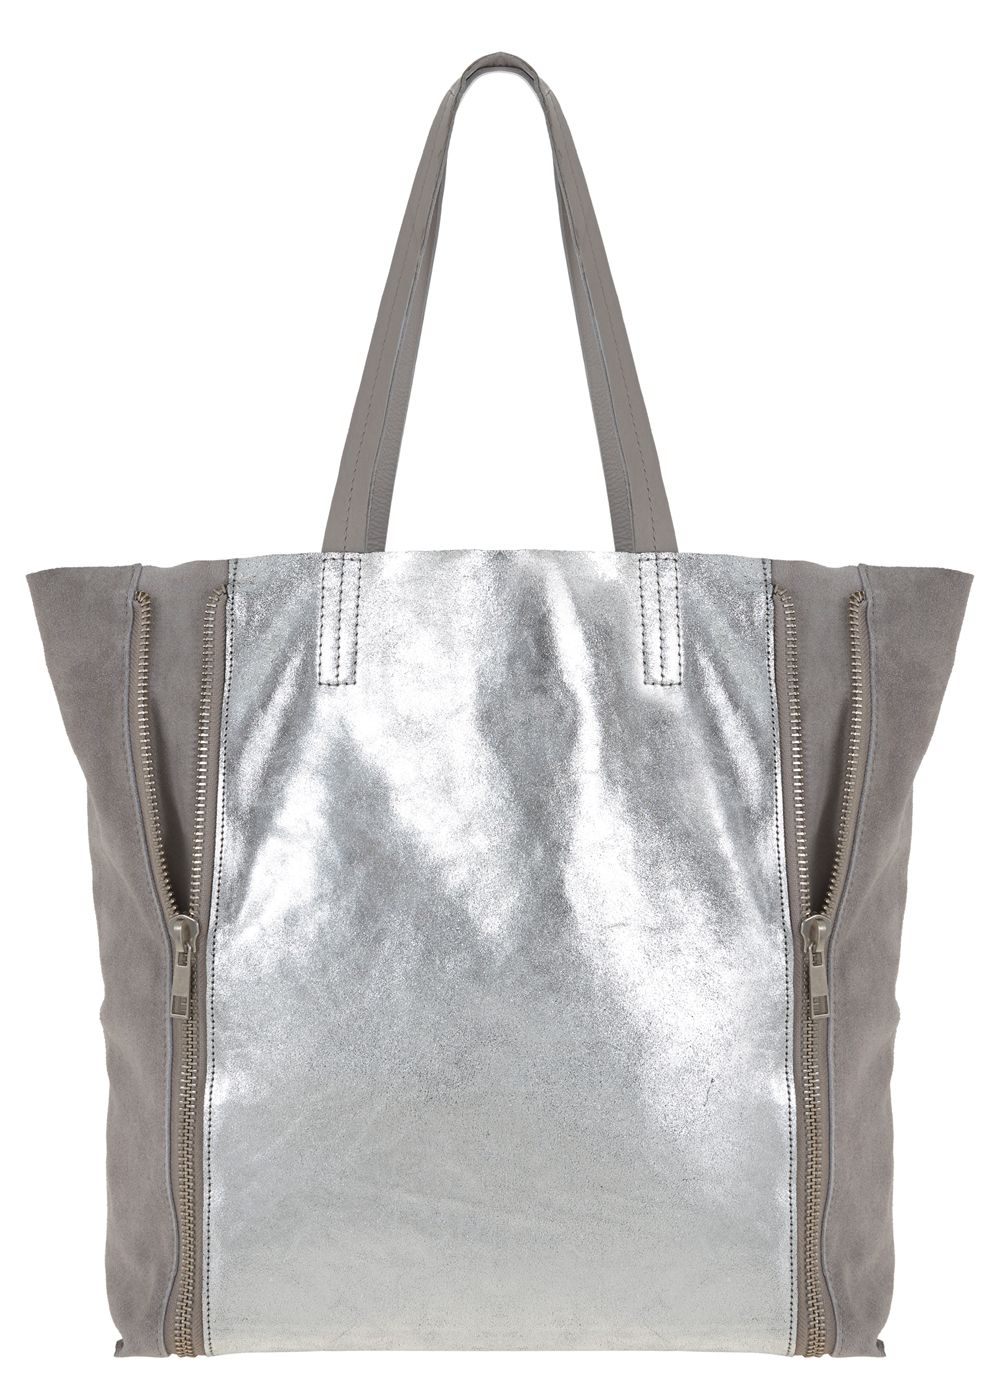 Milly soft leather shopper